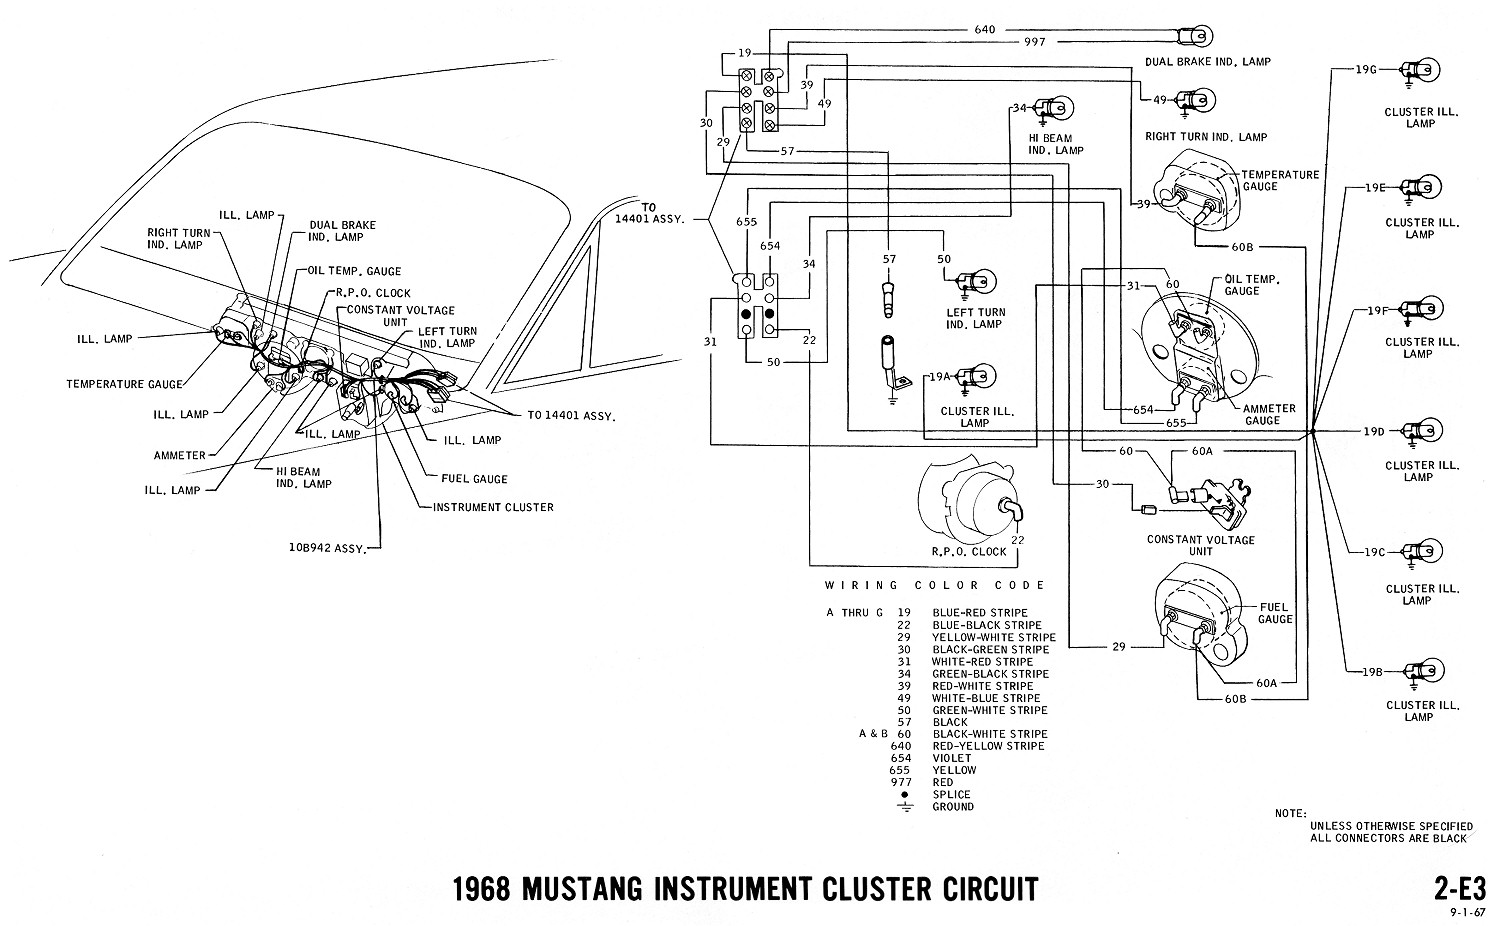 1964 mercury fuse box diagram #17 suzuki fuse box diagram 1964 mercury fuse box diagram #17